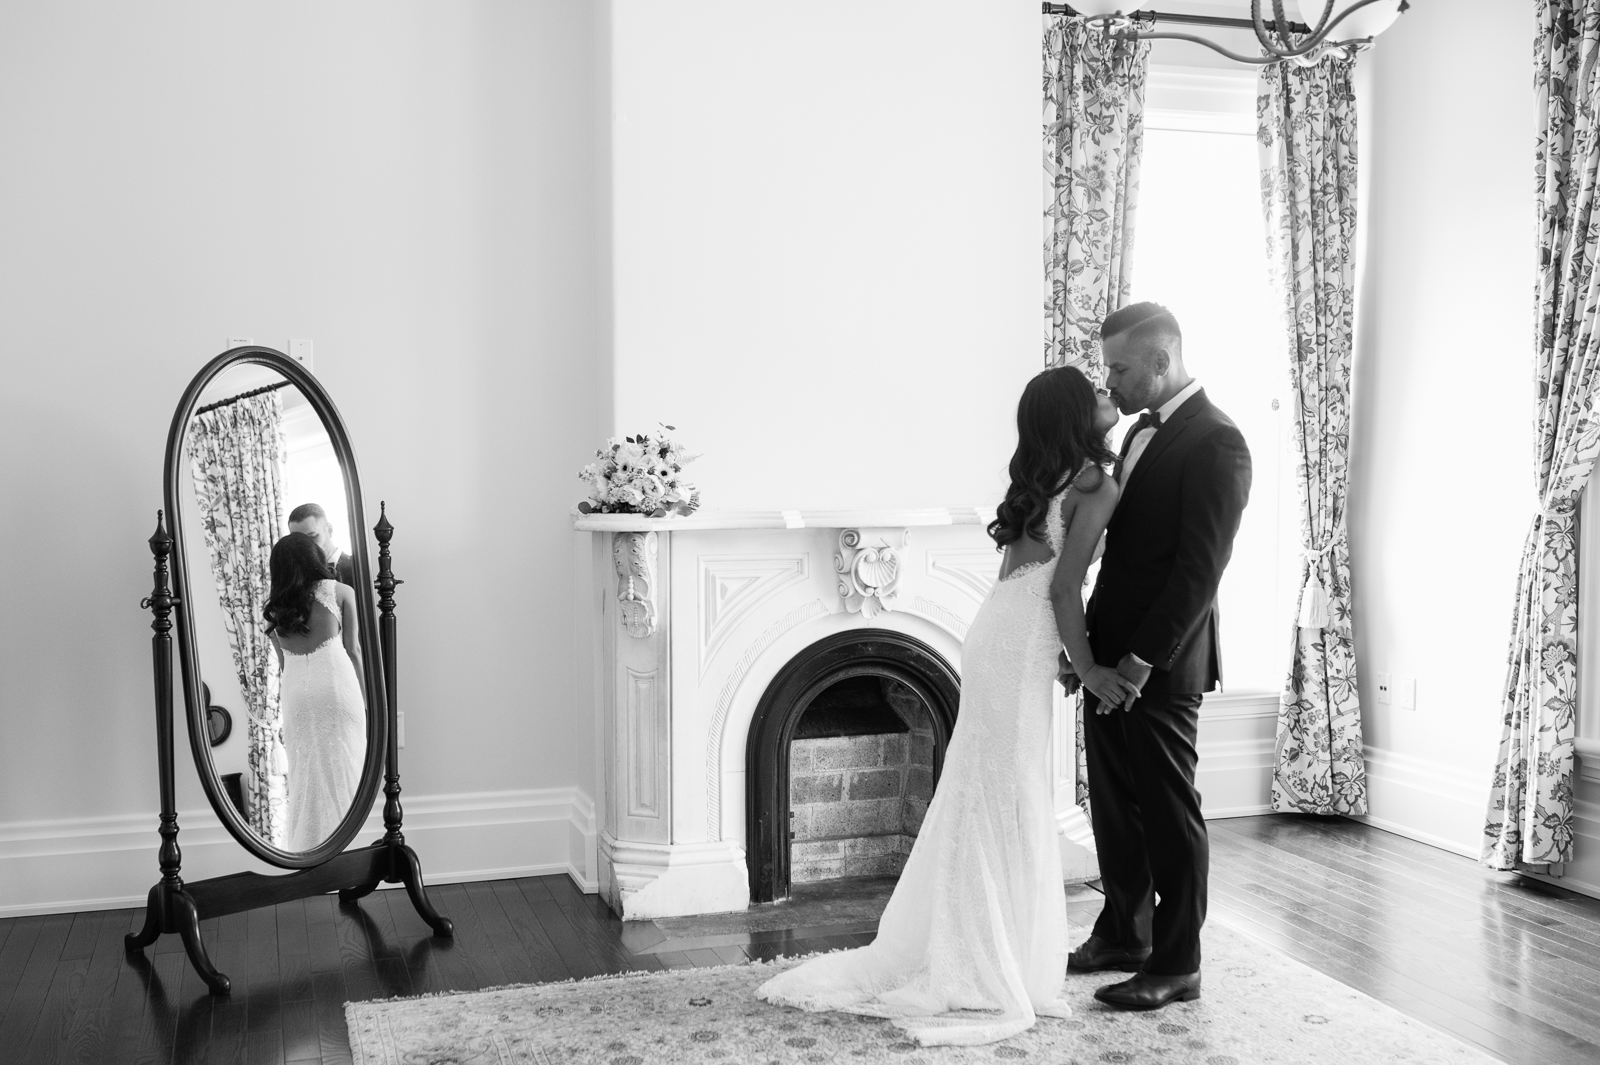 tara-mcmullen-photography-toronto-wedding-photography-alderlea-mansion-wedding-alderlea-wedding-brampton-scotsdale-farm-wedding-reem-acra-wedding-008